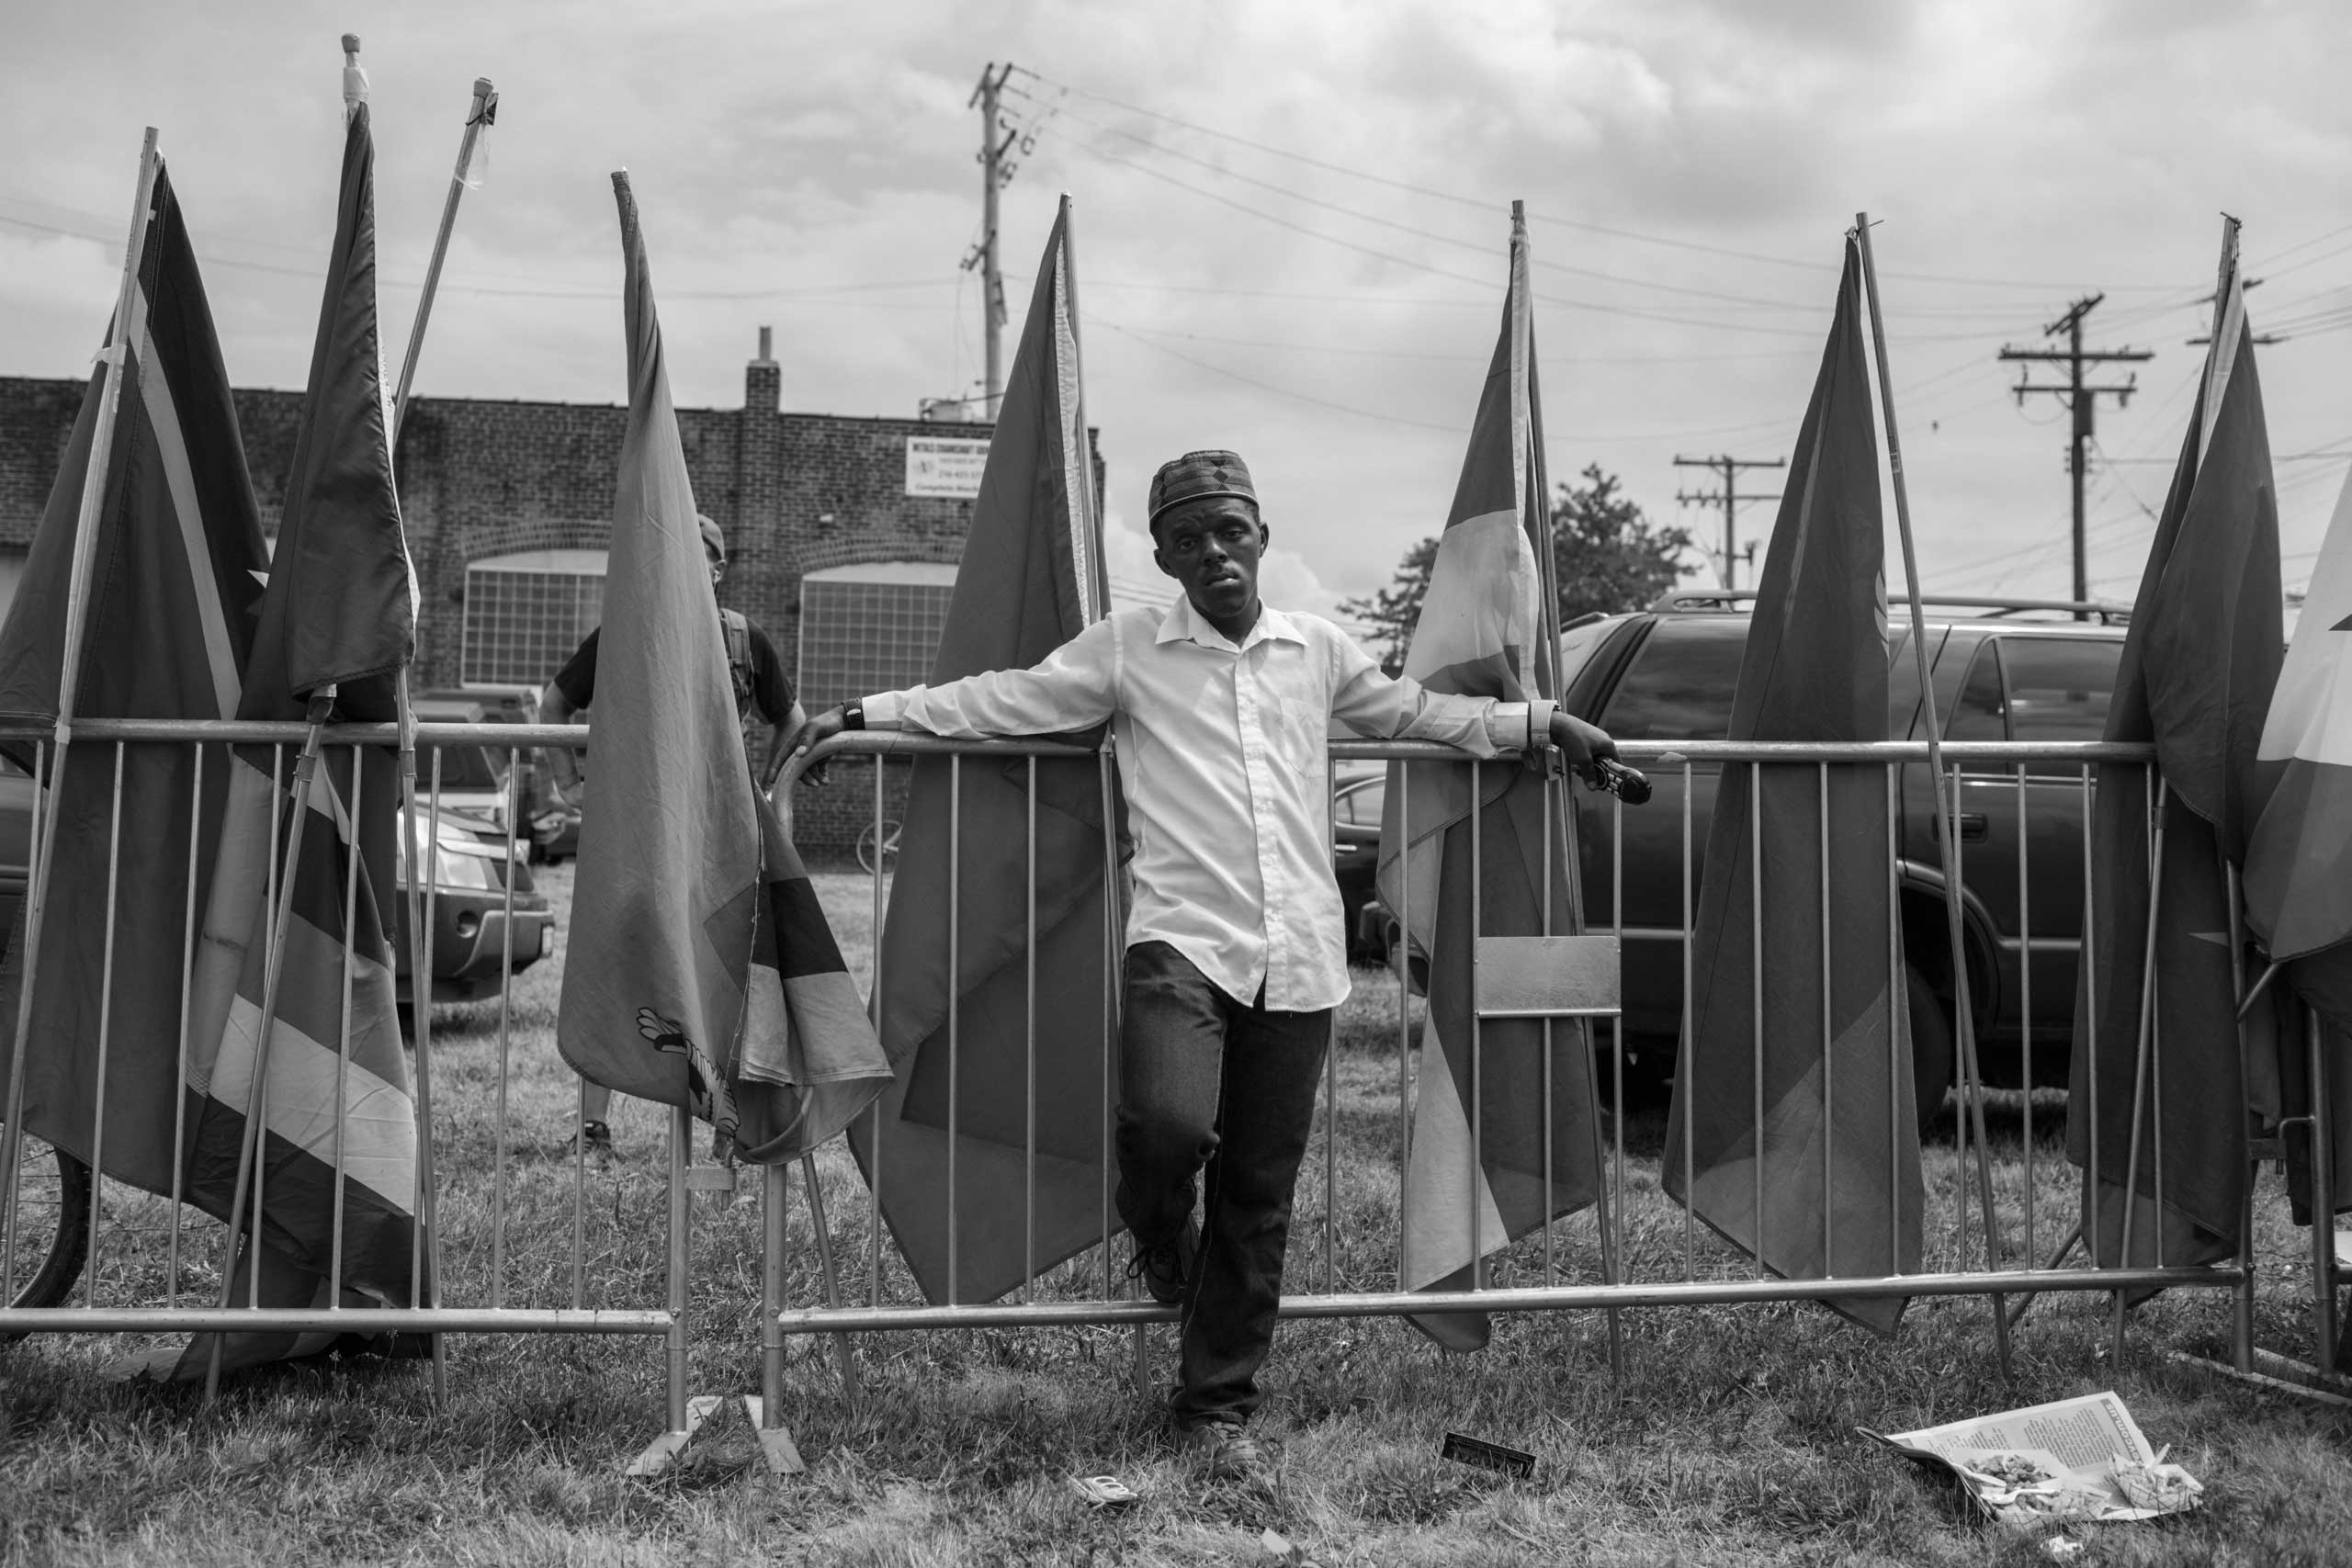 July 18, 2016 - Cleveland, Ohio: Enwar Jr., activist with  Peace in the Hood , is attending the  End Poverty  rally on the first day of the Republican National Convention in East Cleveland.